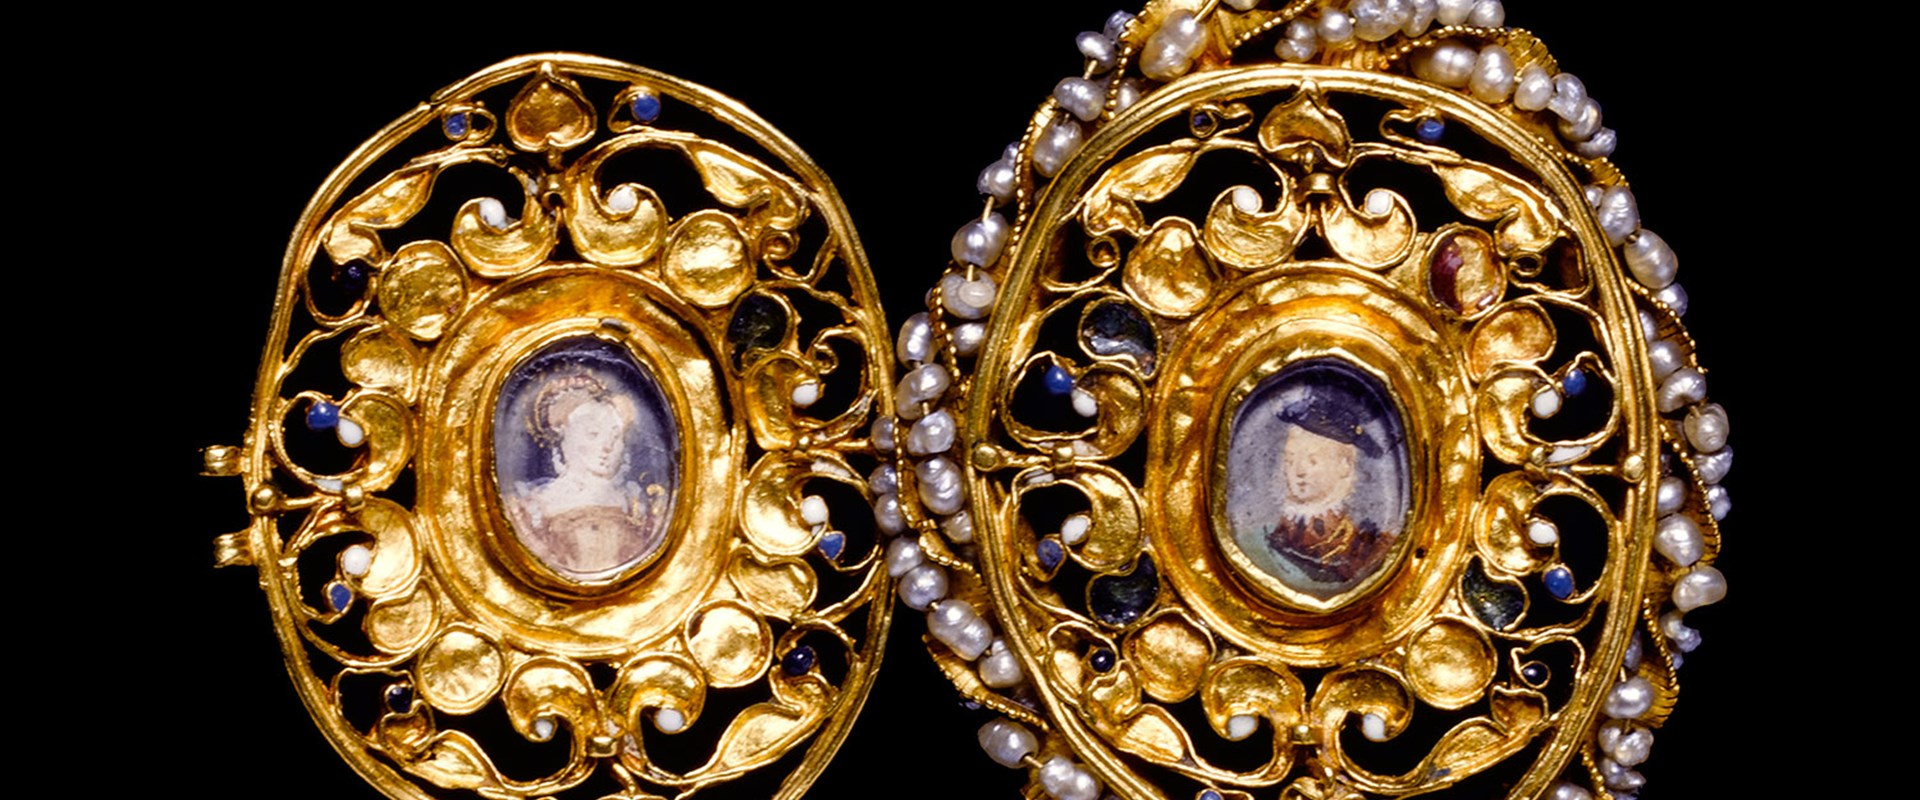 Objects Associated With Mary Queen Of Scots